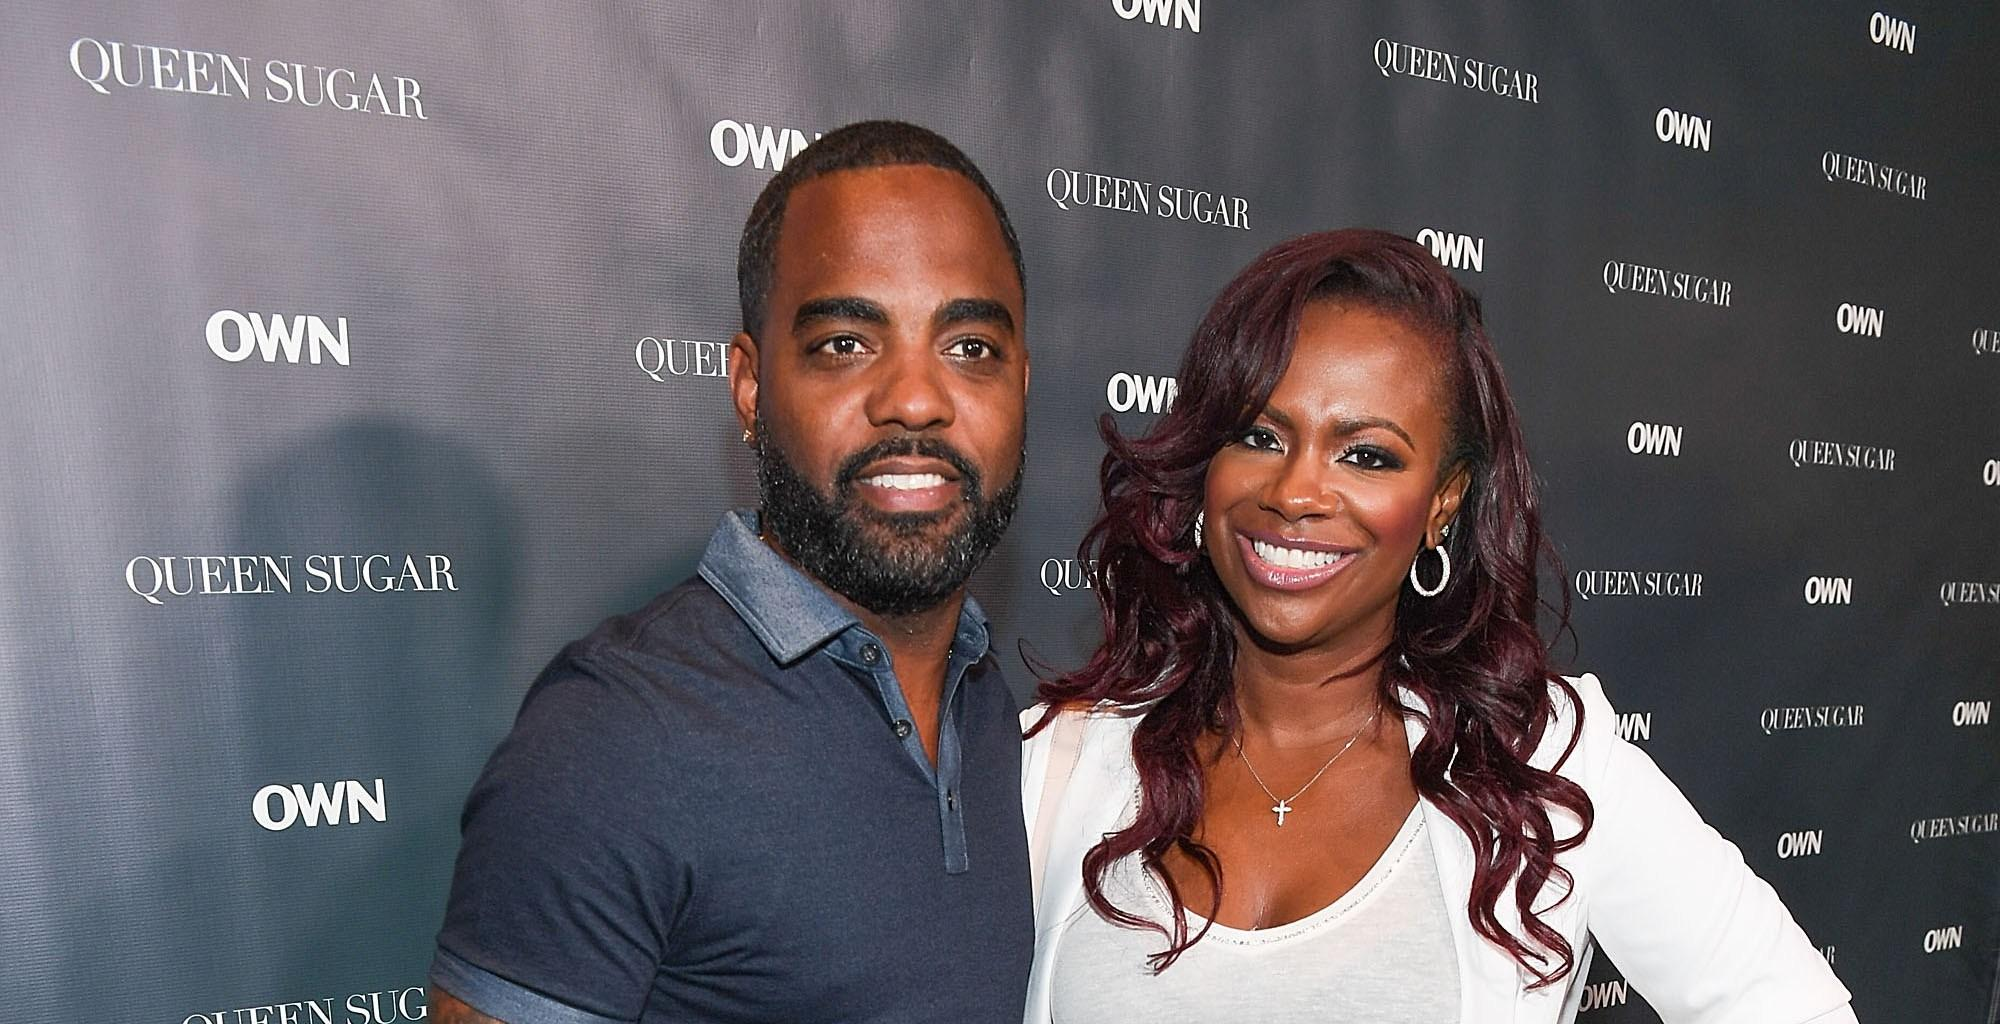 Kandi Burruss Shows Off Her Hourglass Figure In A Gorgeous Dress With Todd Tucker At A Prestigious Event - Fans Notice Her Swollen Feet